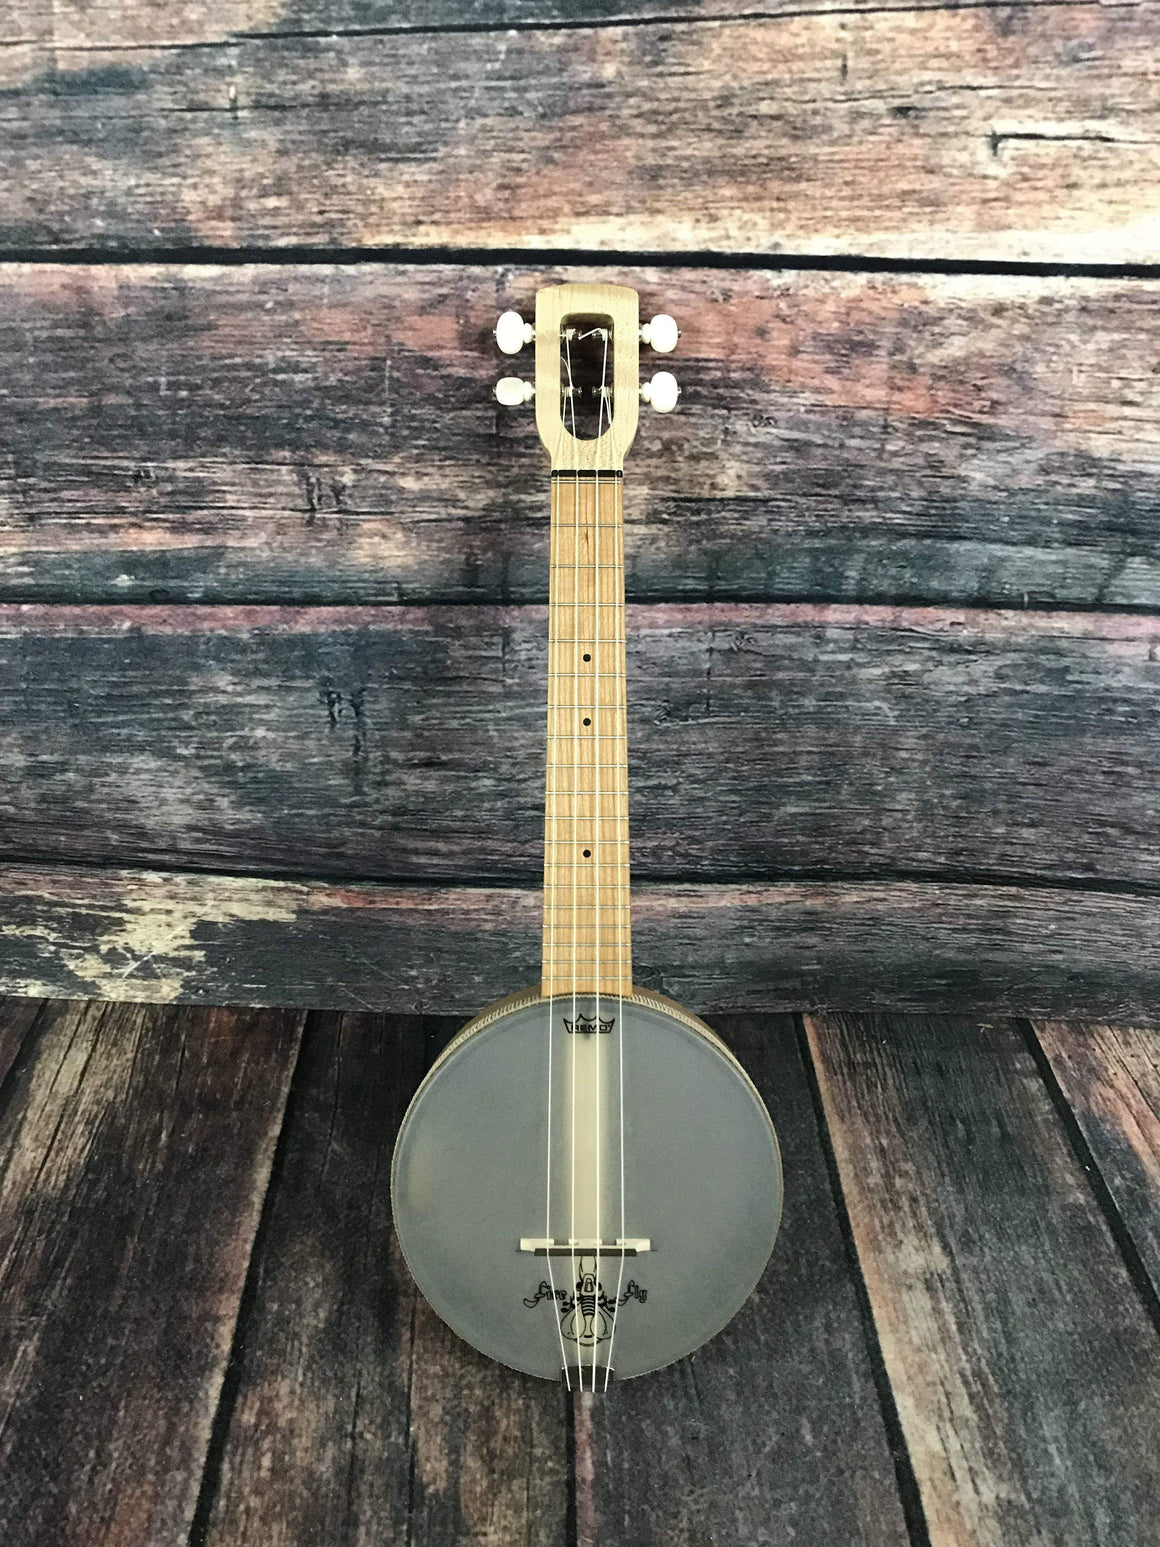 Magic Fluke Company Ukelele Magic Fluke Company Left Handed M90 Concert FireFly Banjo Ukelele- Maple